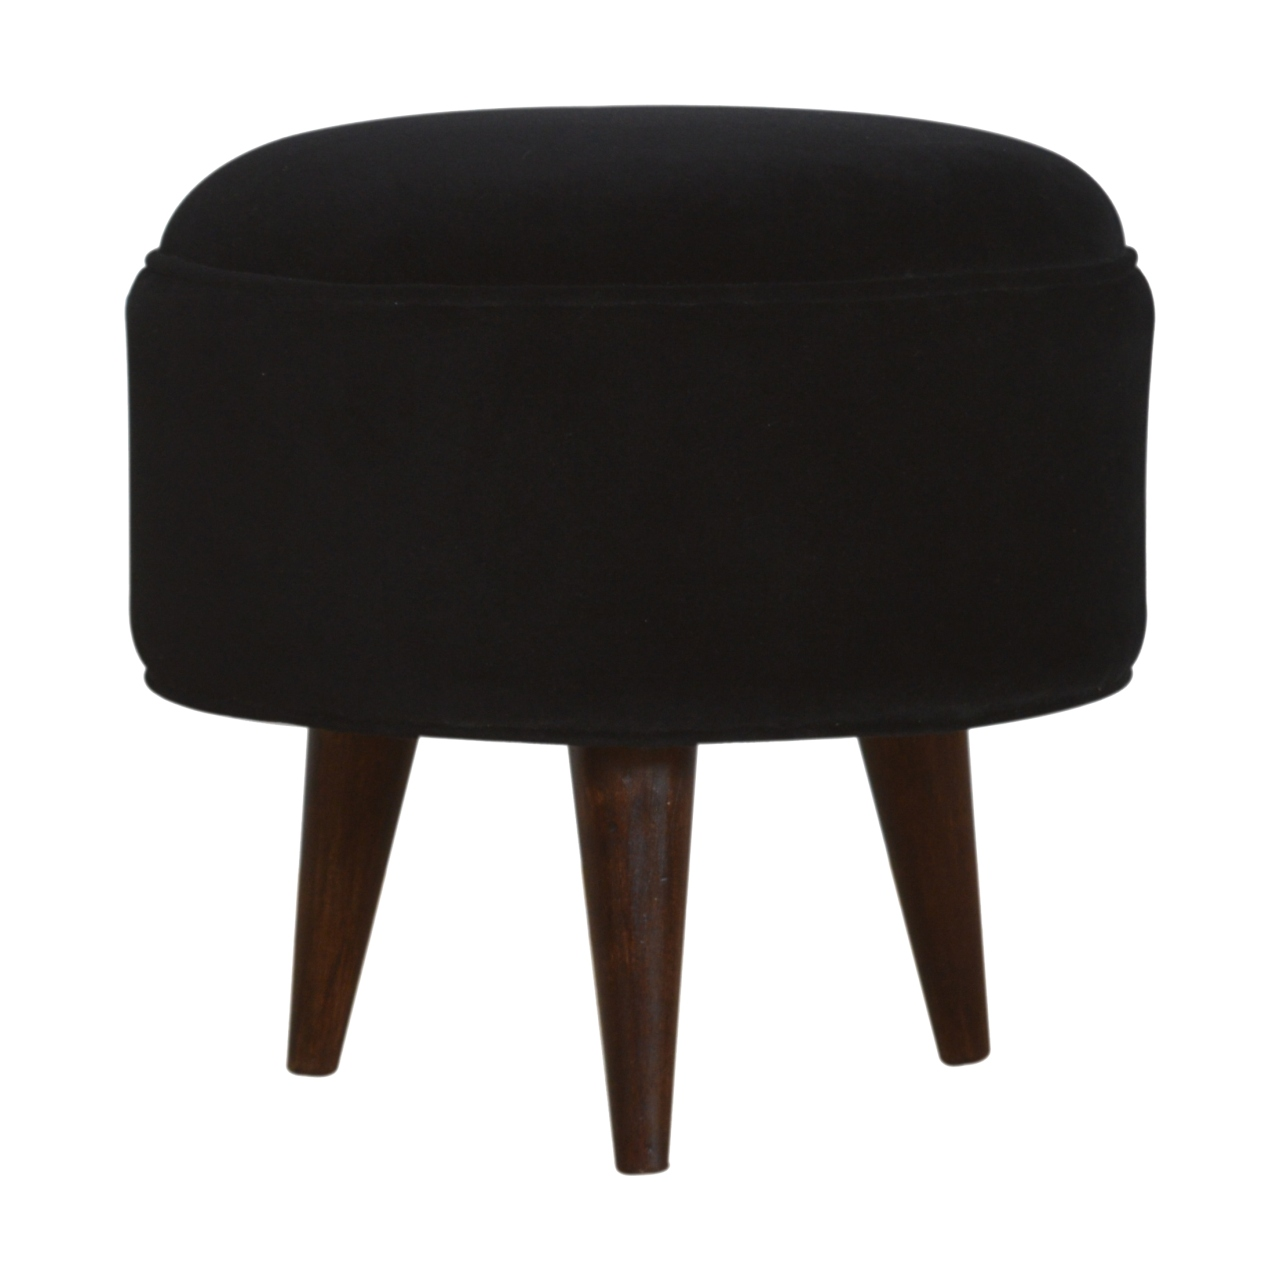 The Home Furnishings Company Black Velvet Nordic Foot Rest Stool